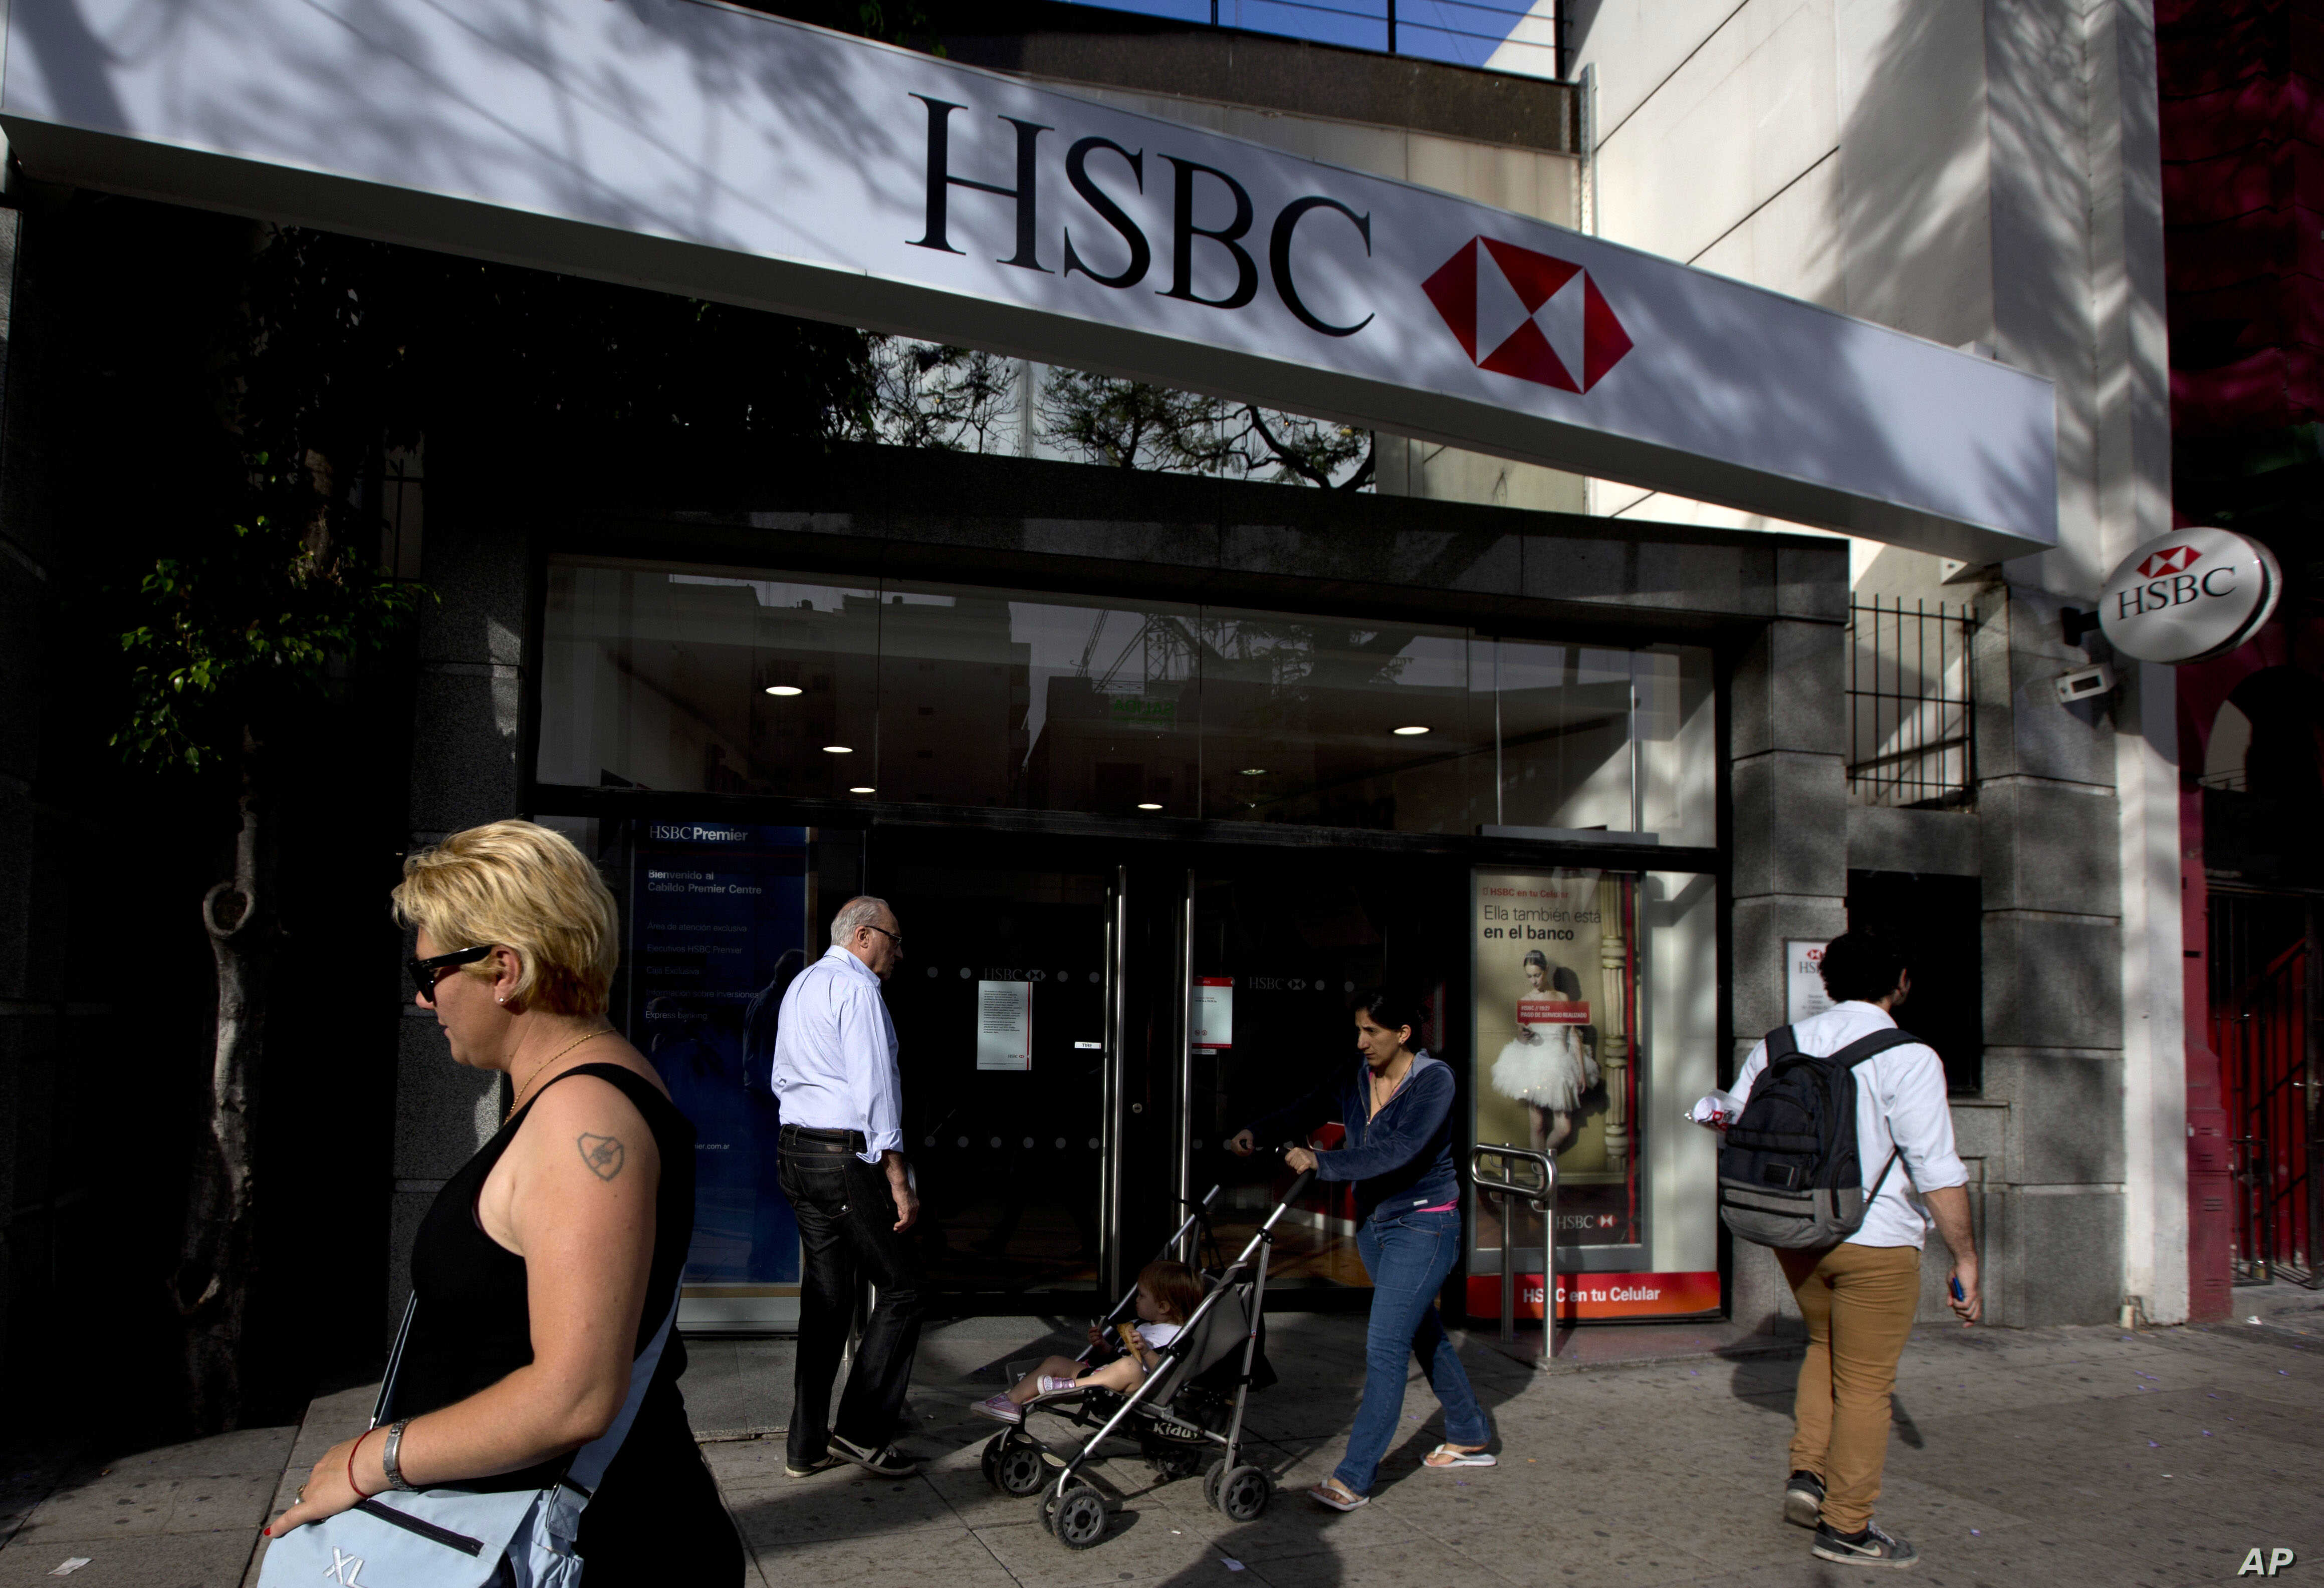 Argentina Wants HSBC to Repatriate $3 5 Billion in Offshore Funds